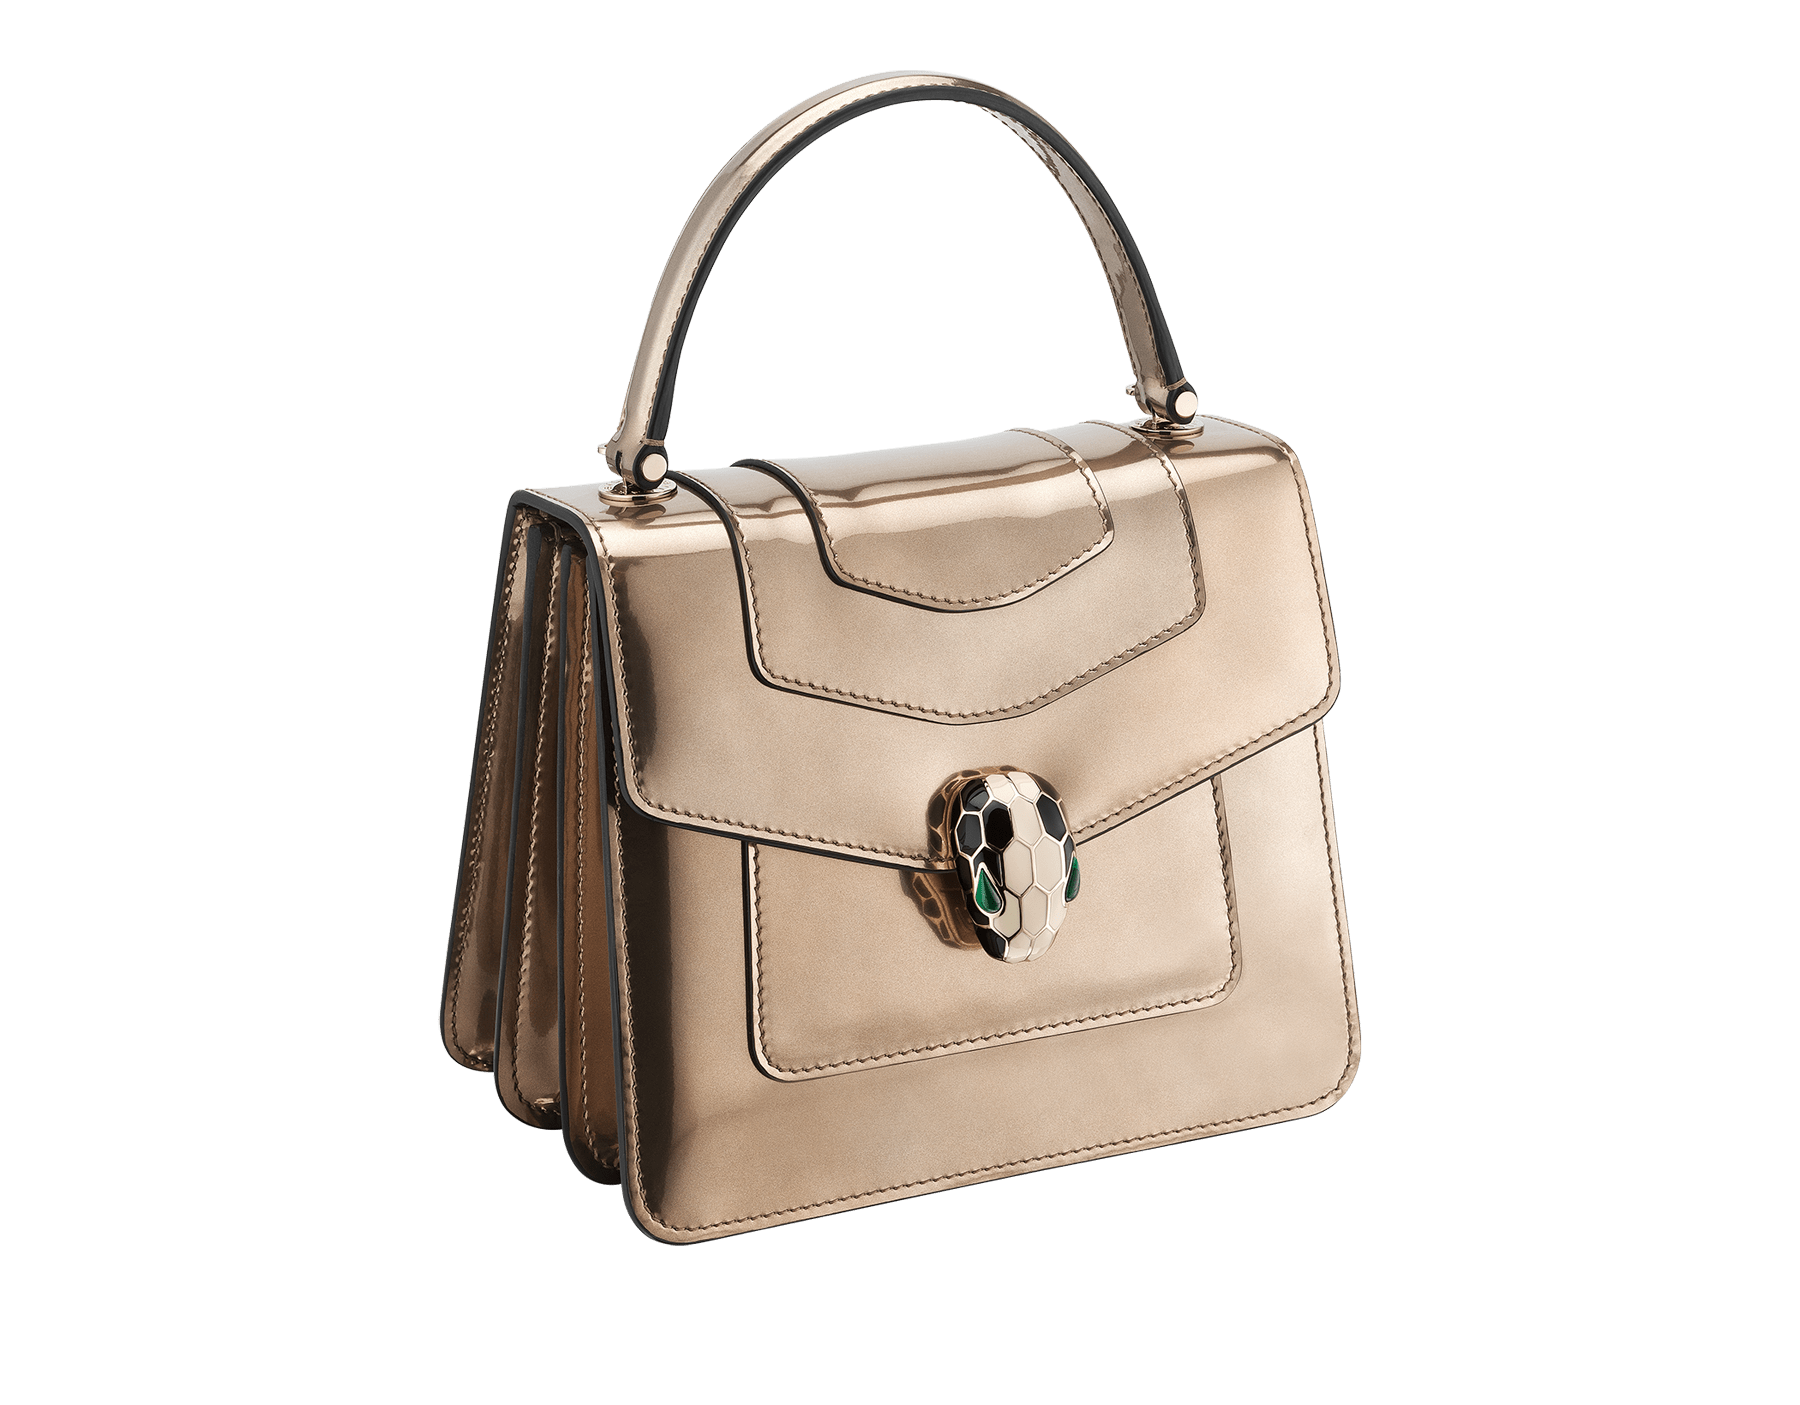 Flap cover bag Serpenti Forever in antique bronze brushed metallic calf leather. Brass light gold plated hardware and snake head closure in black and white enamel with eyes in green malachite. Test-Borse-Colore image 2